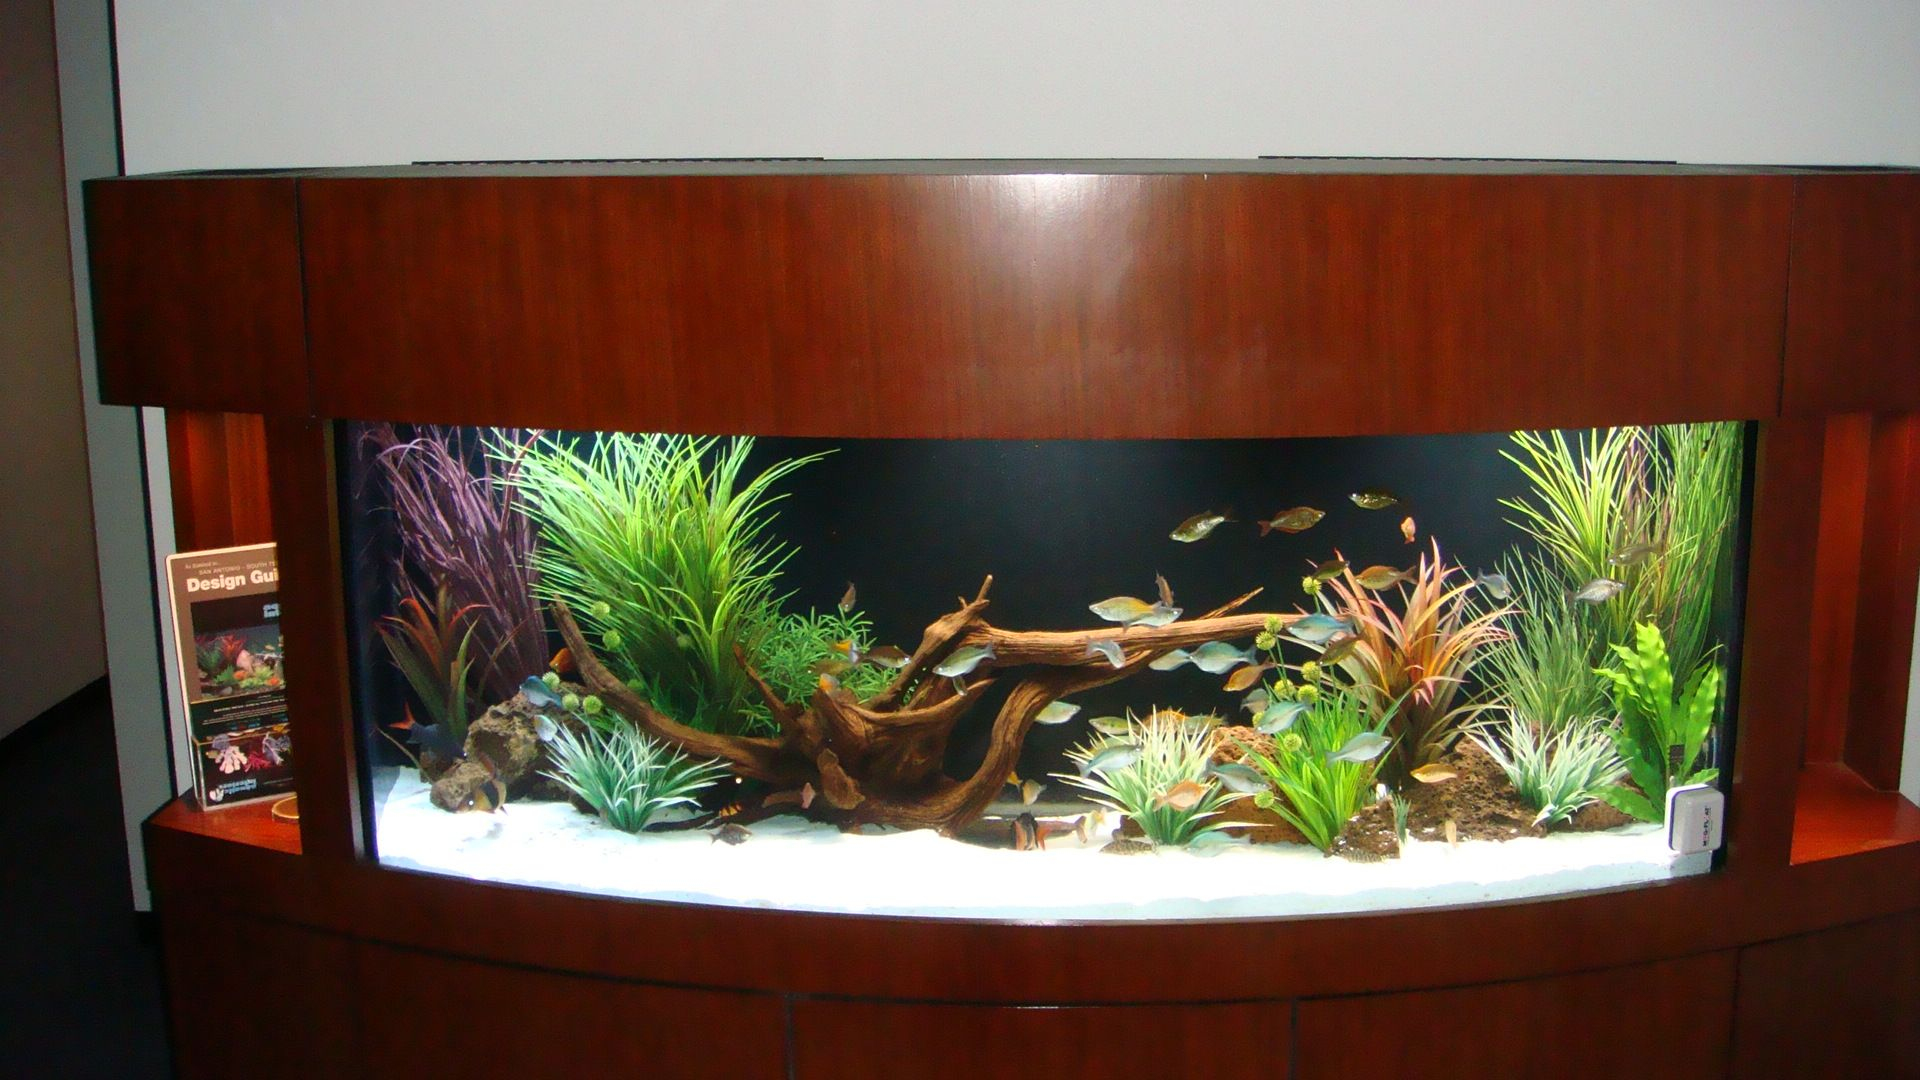 Aquarium Decoration Ornaments Of Transform The Way Your Home Looks Using A Fish Tank Fish